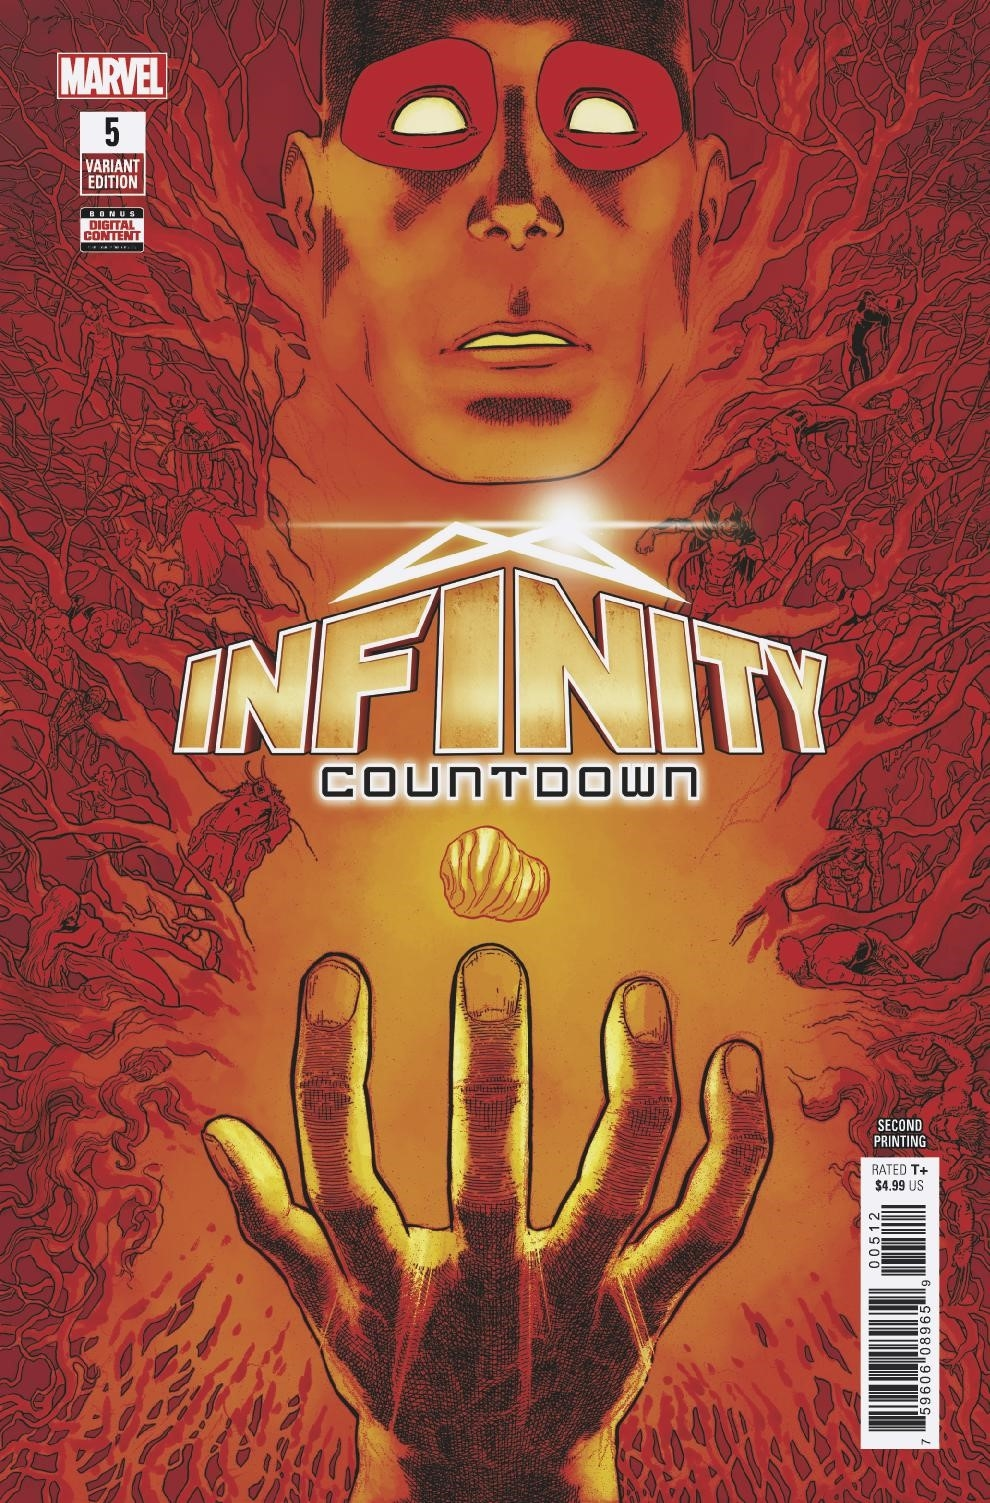 INFINITY COUNTDOWN #5 (OF 5) 2ND PTG HAWTHORNE VAR